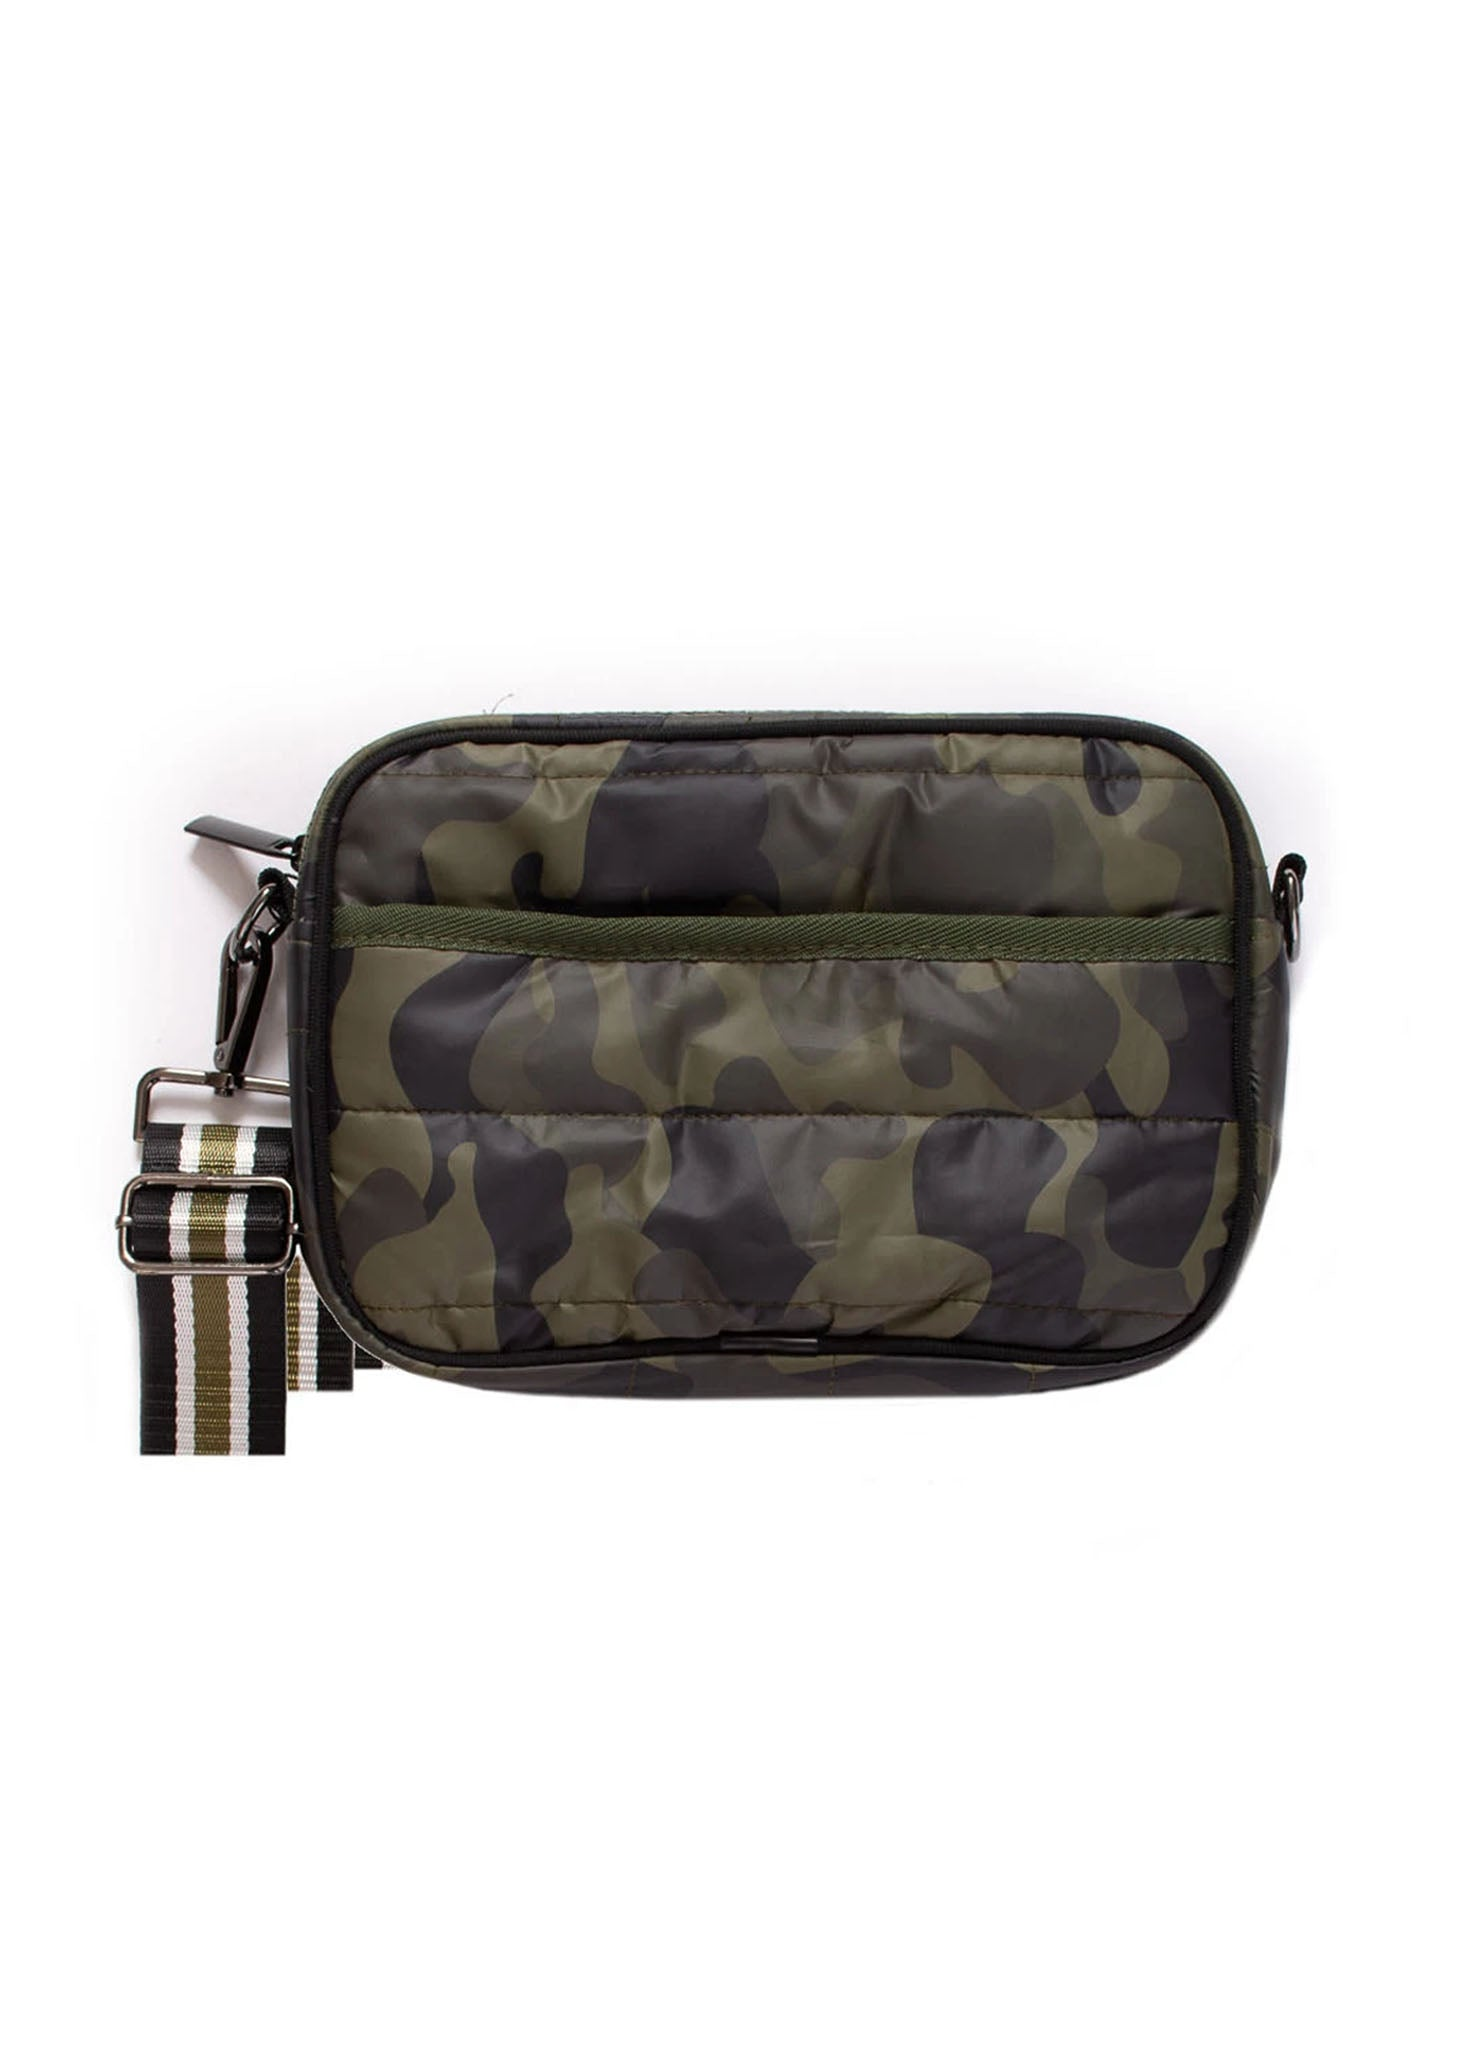 Haute Shore - Drew Sarg Crossbody (DREW, Green Camo w/Black, Cream, Green Stripe)